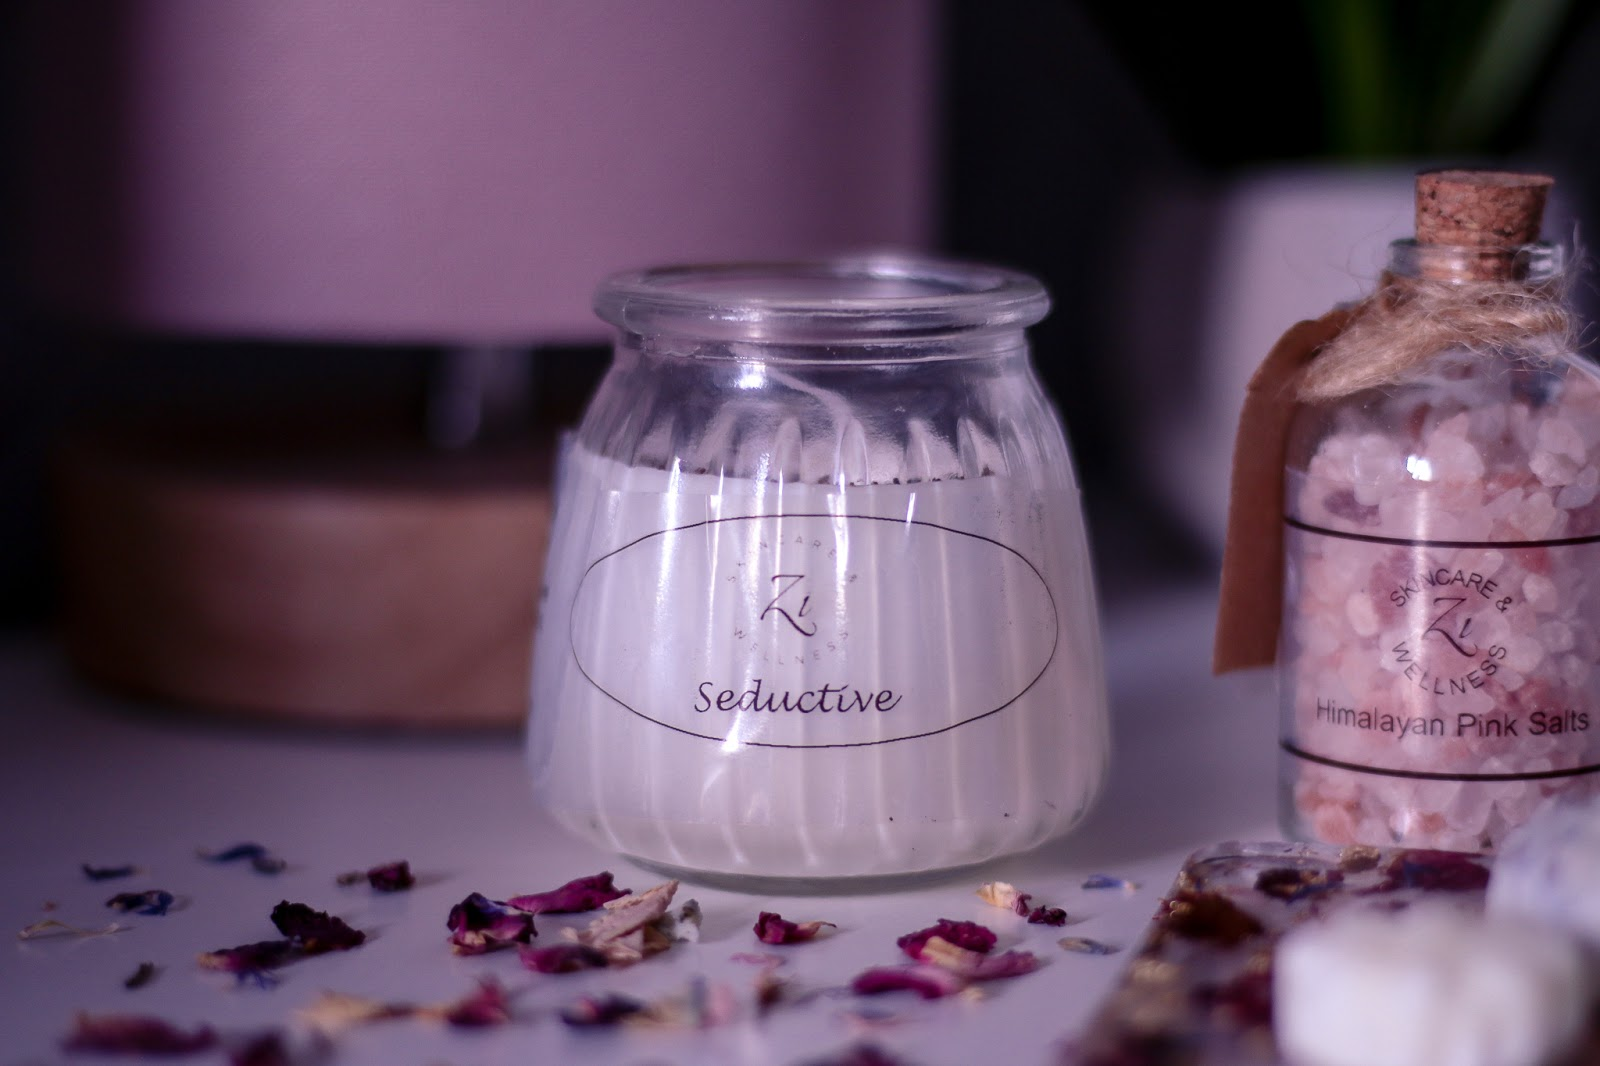 Close up photo of the Seductive candle from Zi Beauty